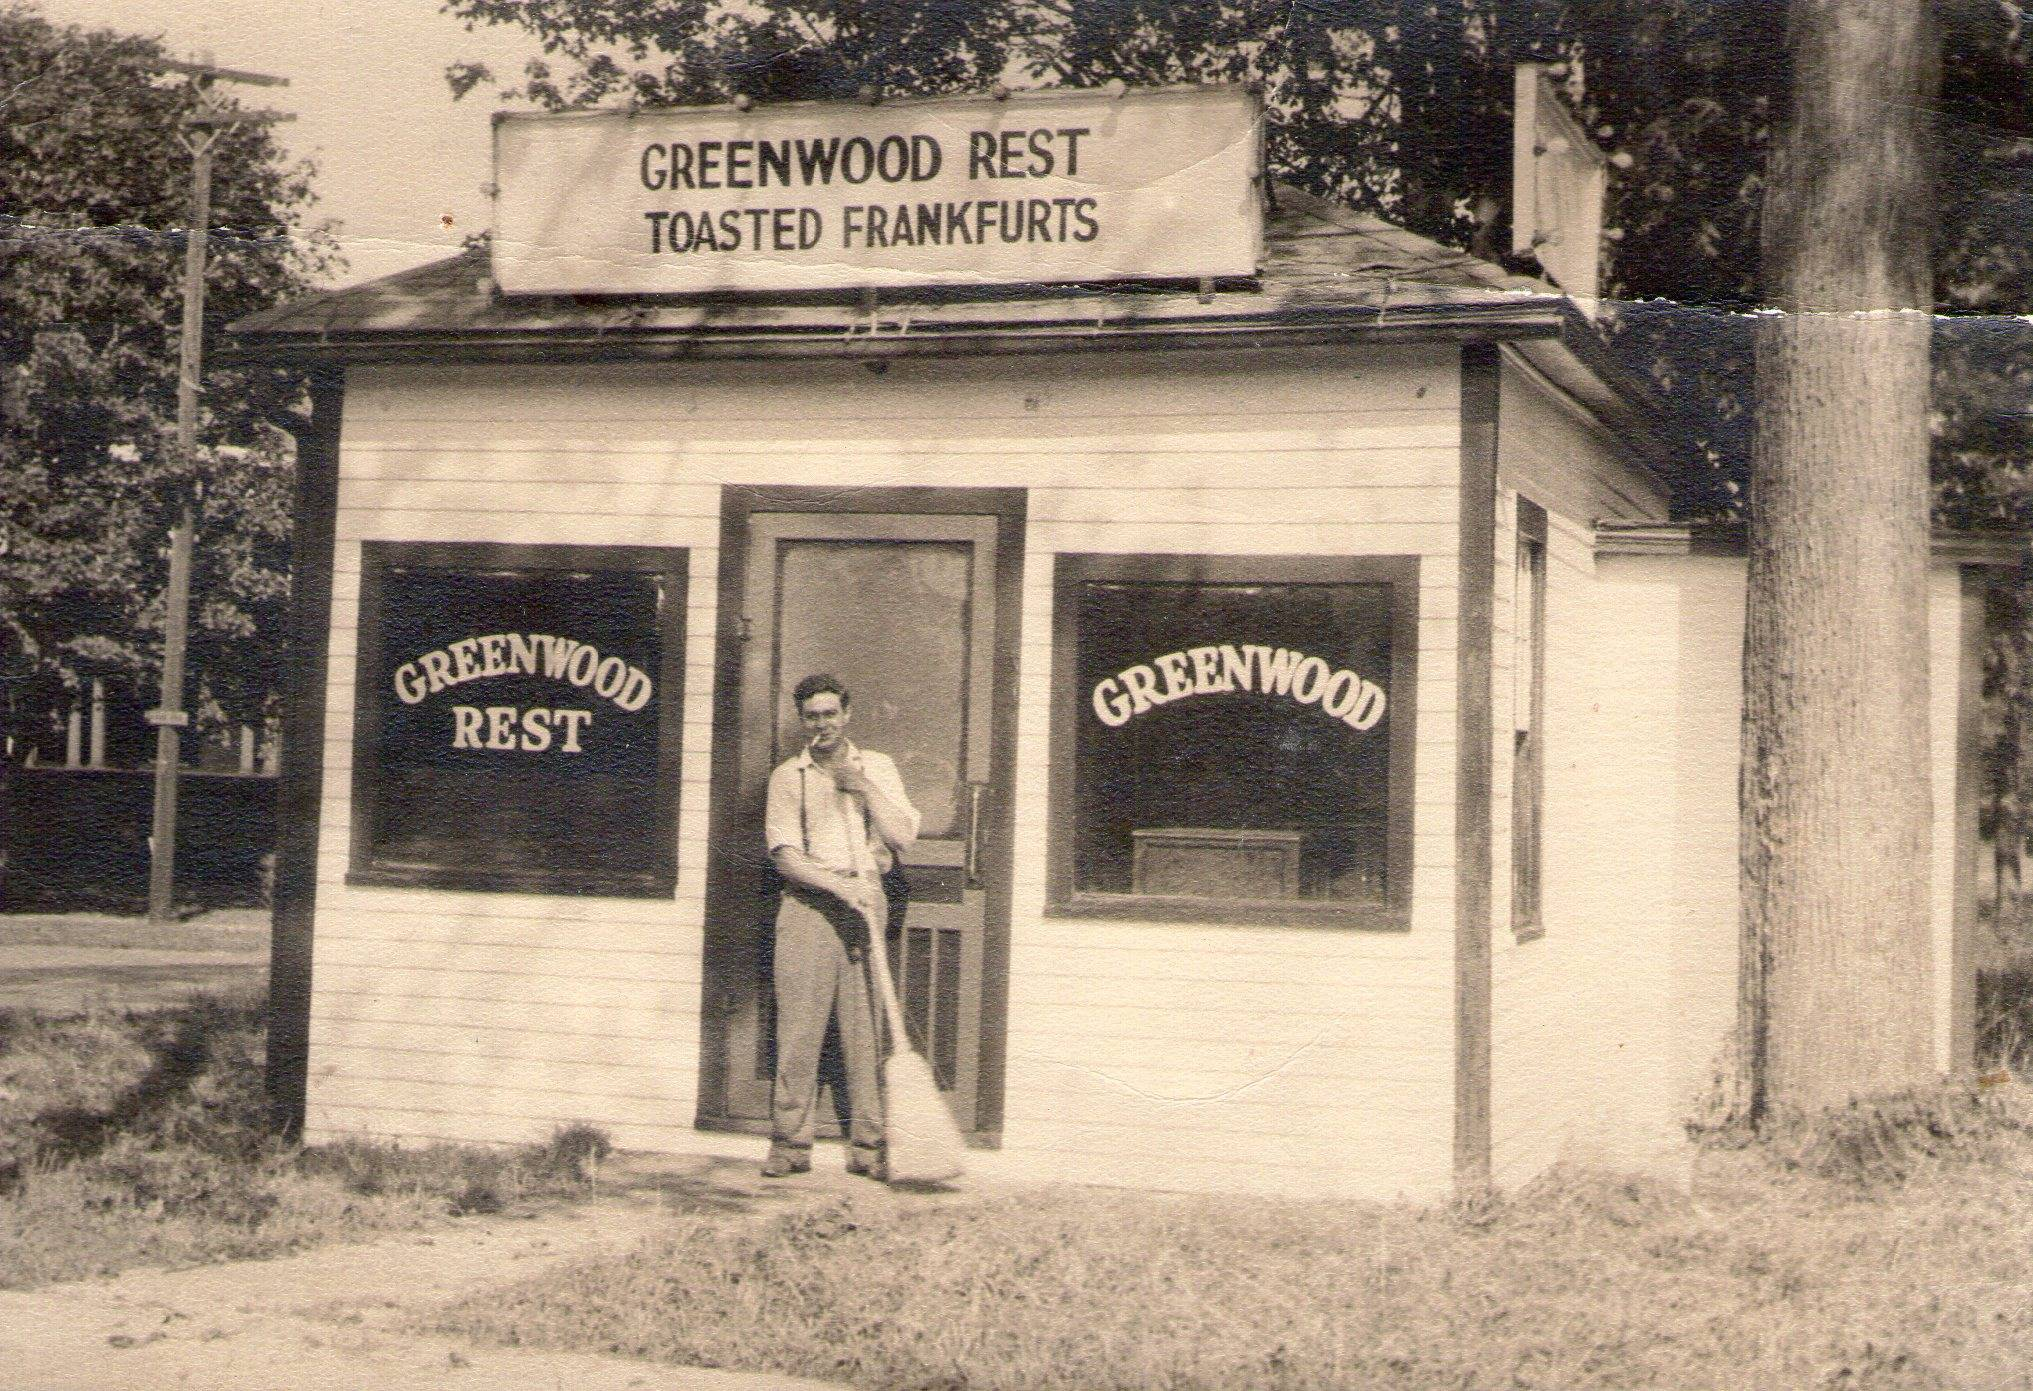 Greenwood Ave Rest, Bethel CT